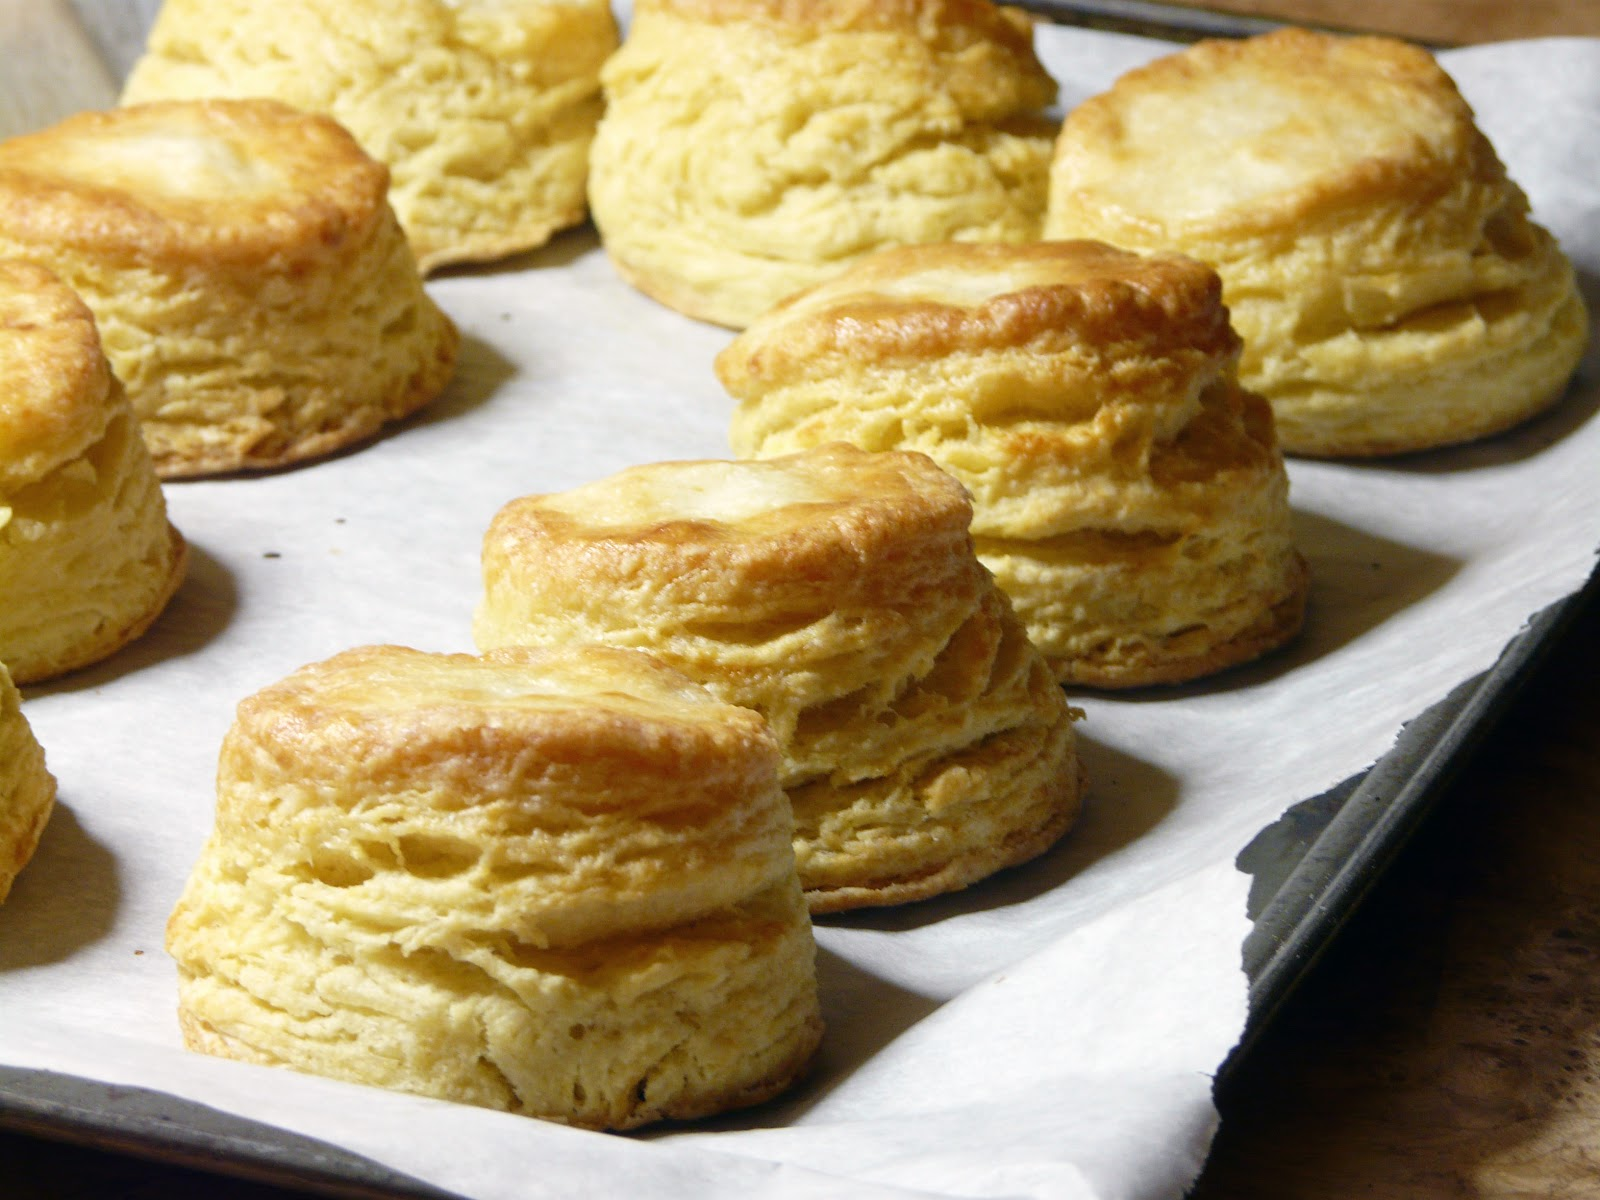 buttermilk-biscuits-november-25th-2012-1.jpg